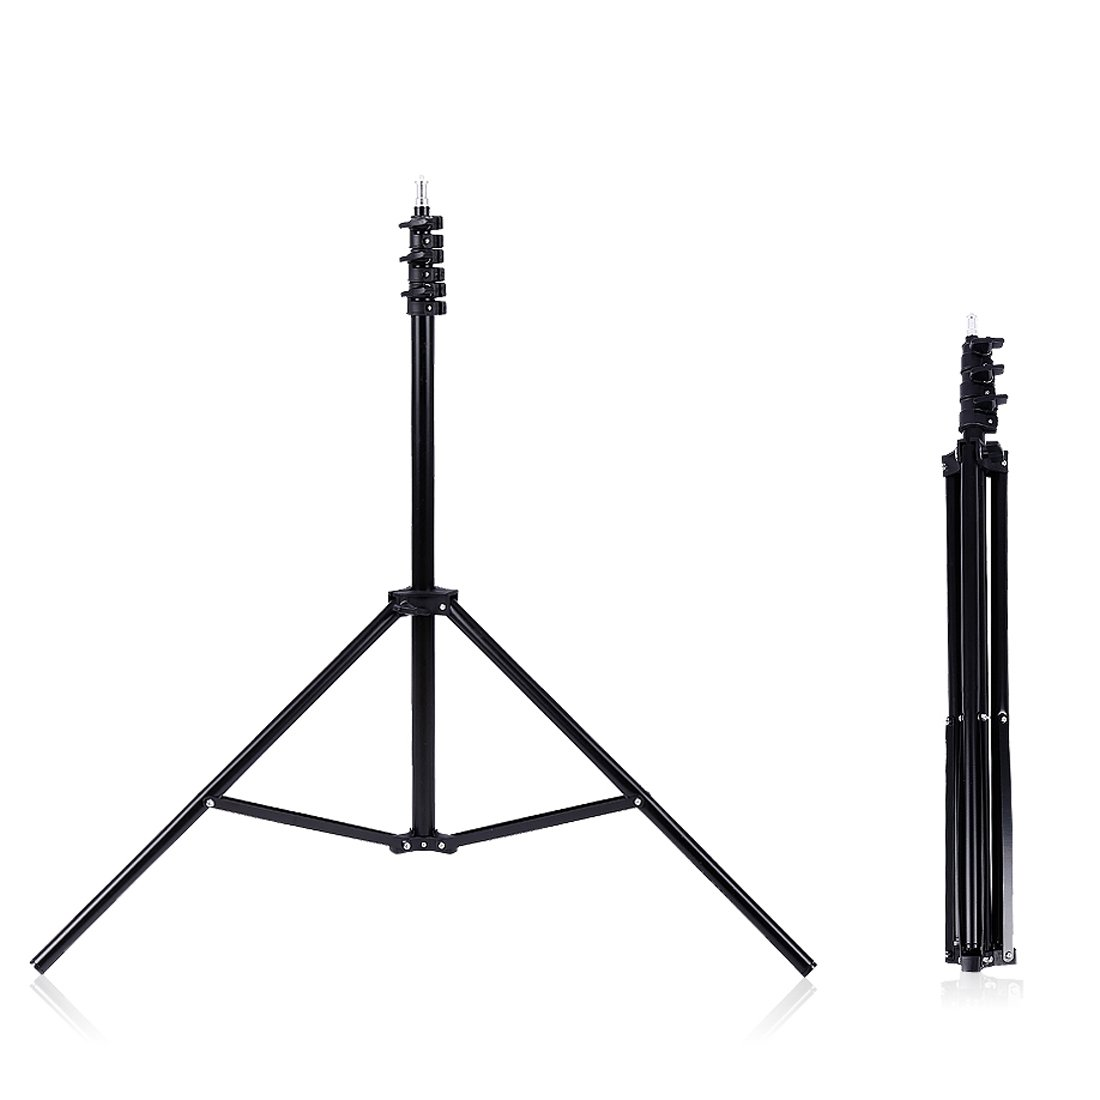 Cheap Konseen 240cm 94inch Portable Flexible Tripod Stand Jumbo Lightweight Aluminum Alloy Phone Tripods Legs With